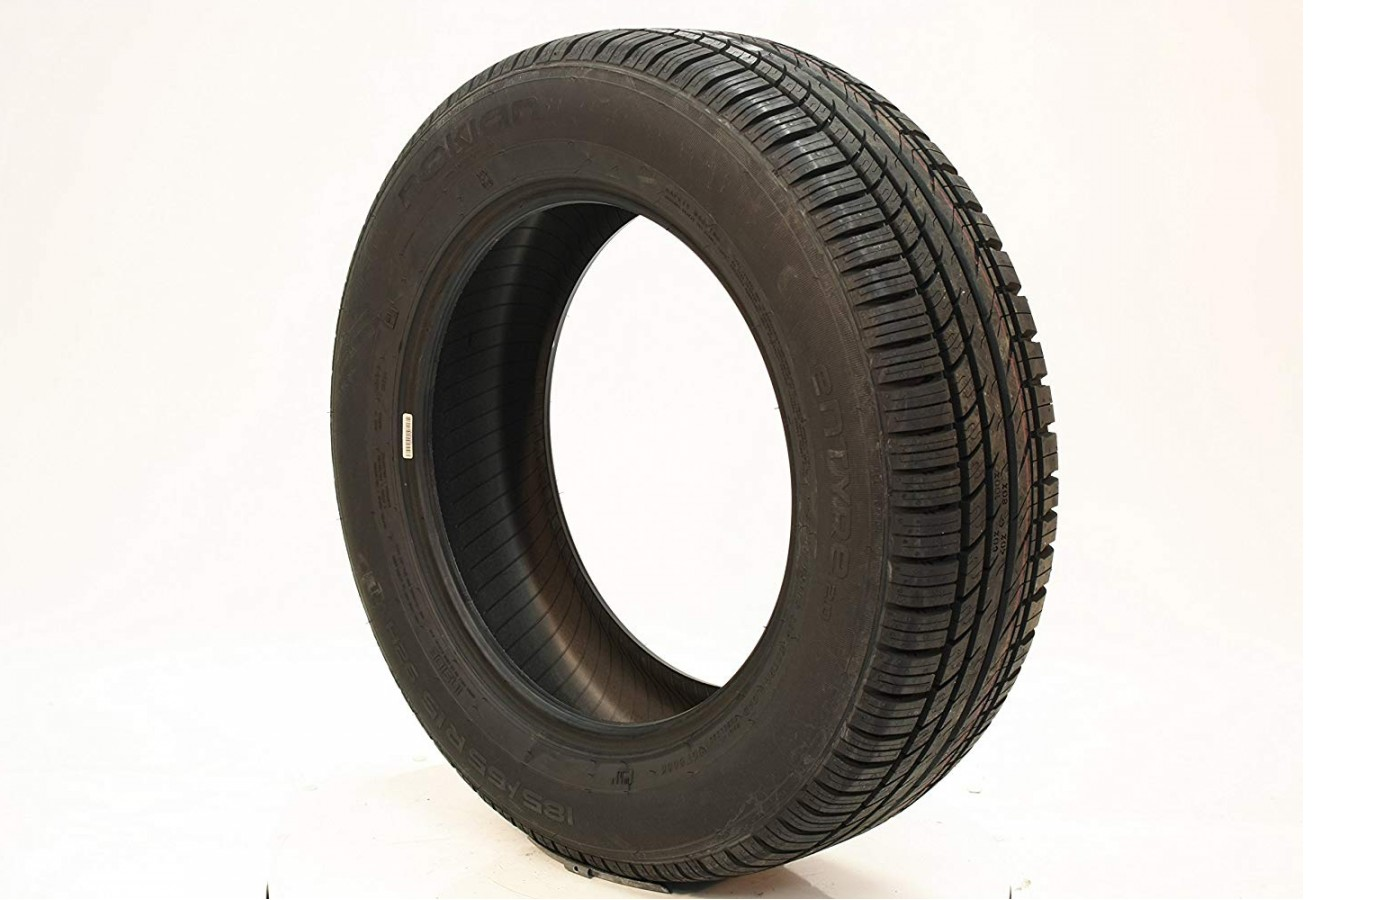 The eNTYRE 2.0 is one of the top-selling tires that Nokian has manufactured